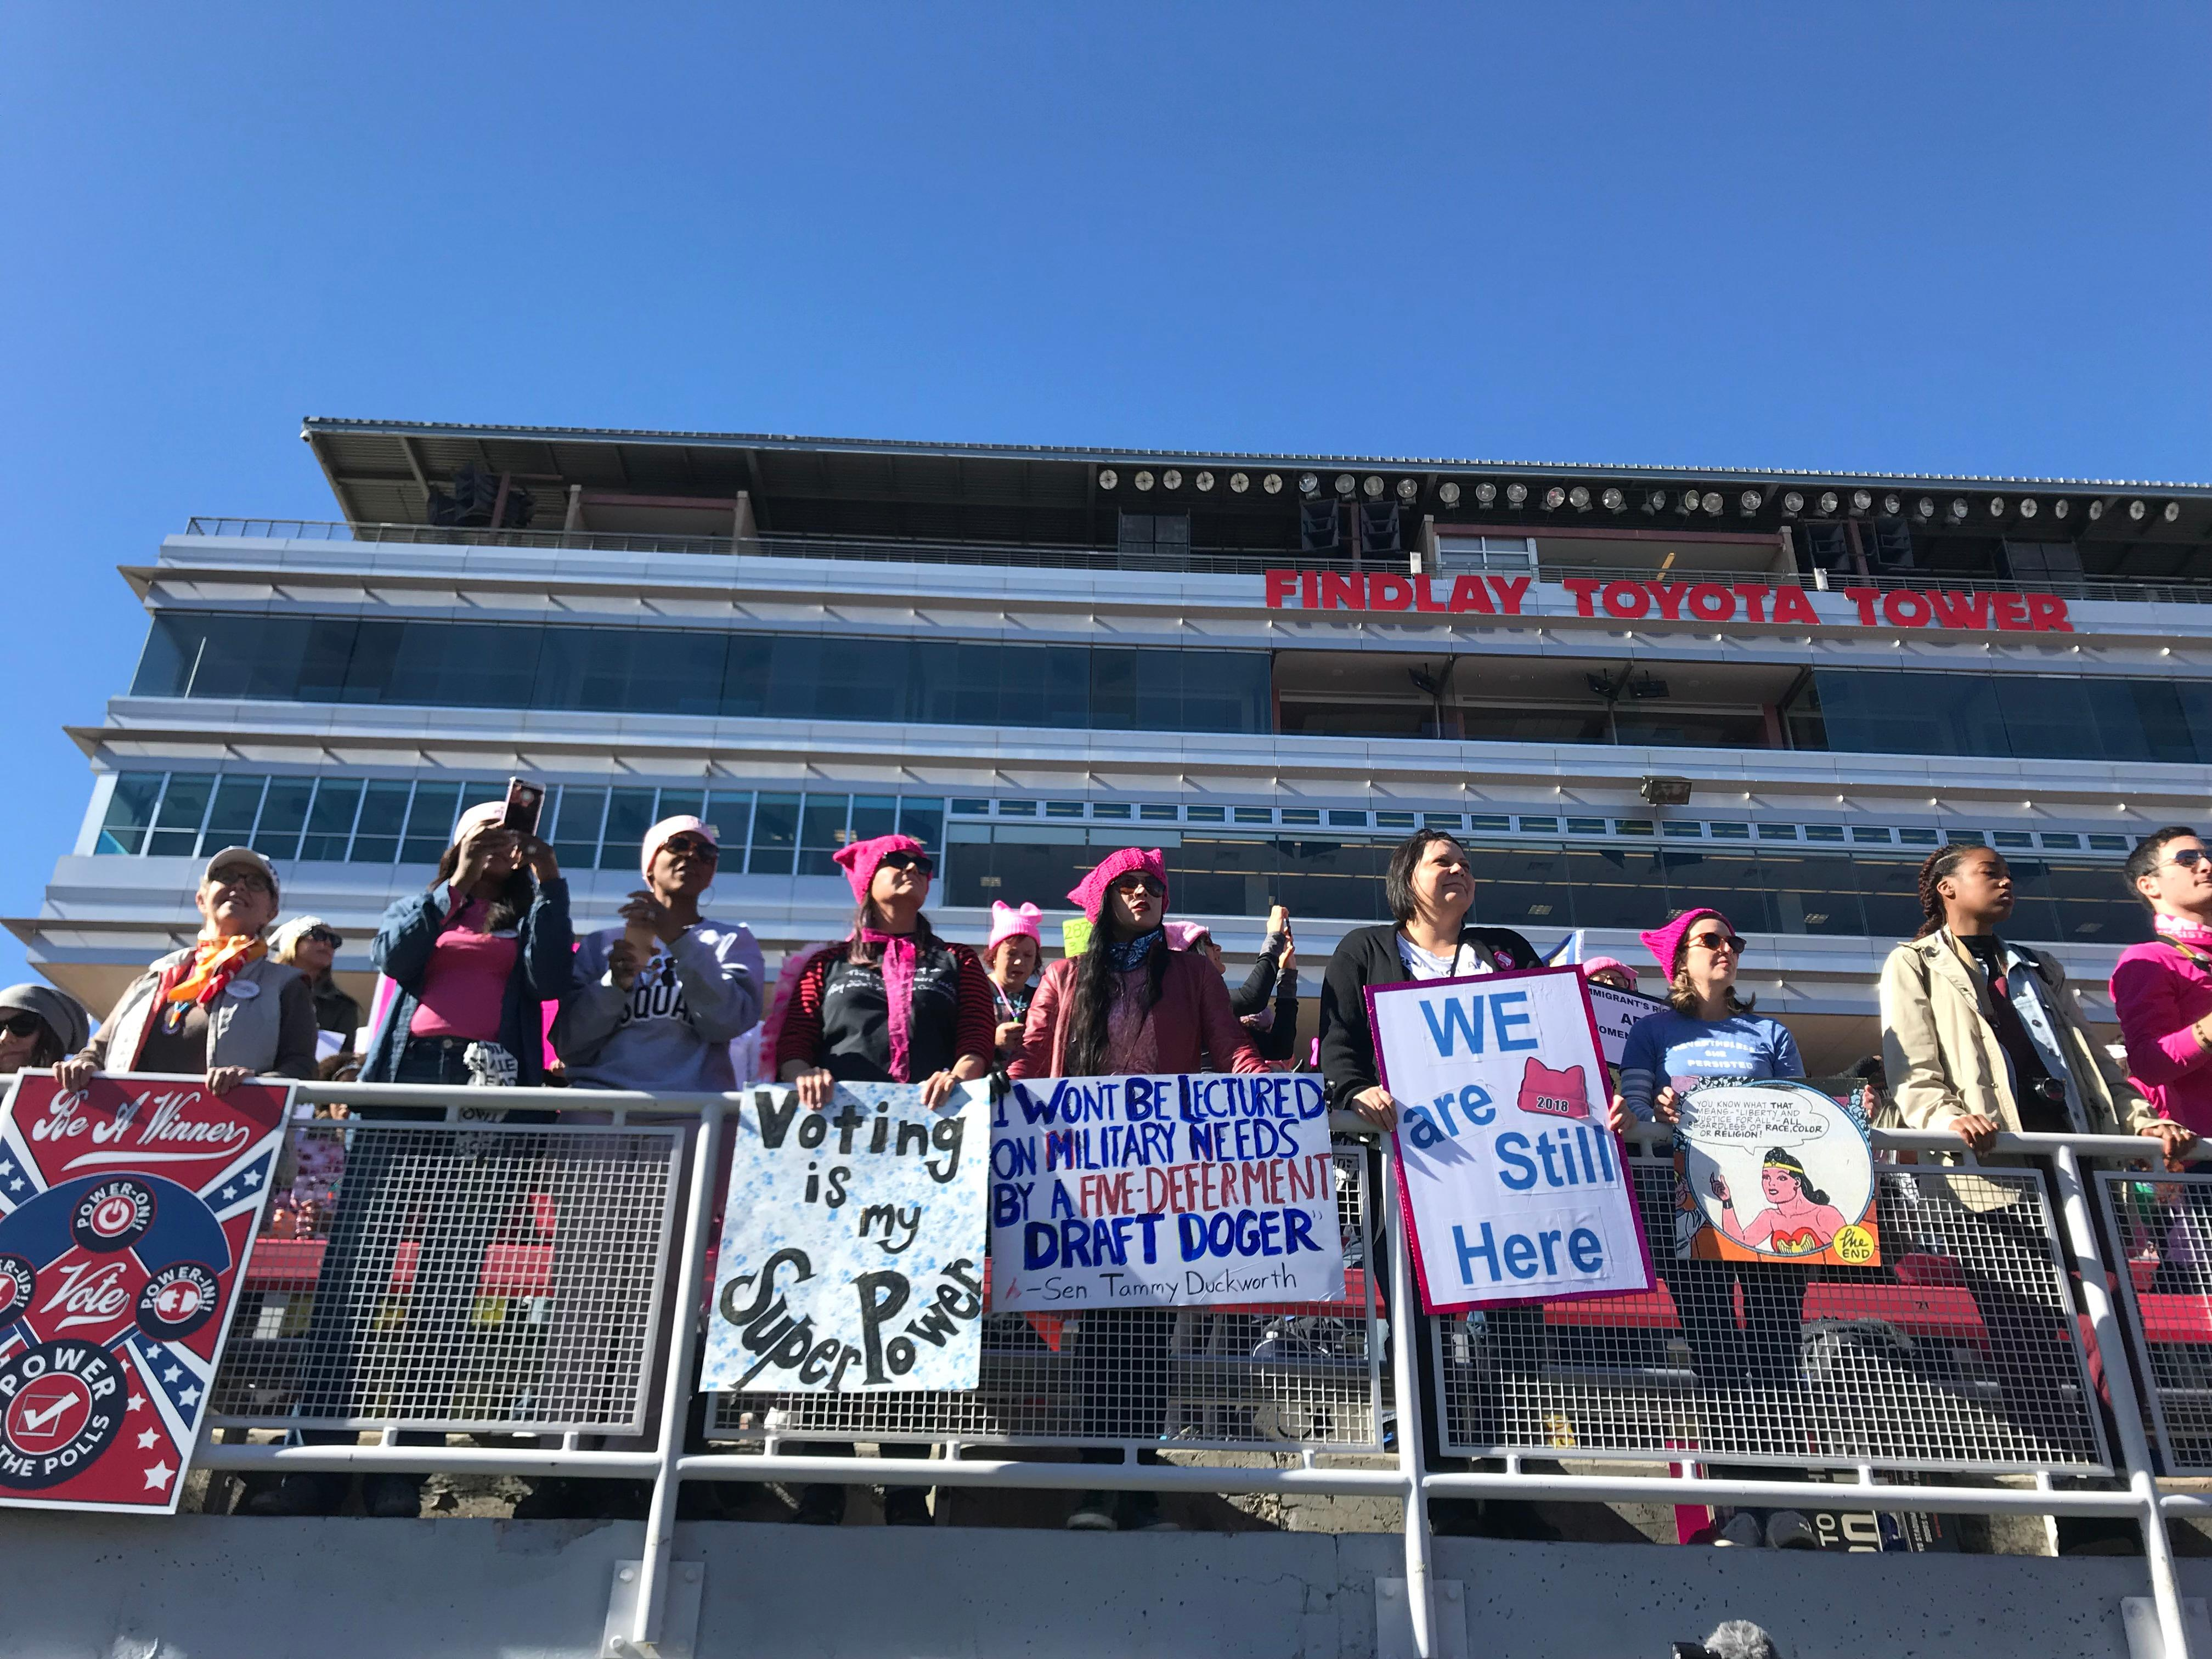 Part of the crowd at the Women's Voter March Rally at Sam Boyd Stadium in Las Vegas on Sunday, Jan. 21, 2018. (Kyndell Nunley | KSNV)<p></p>